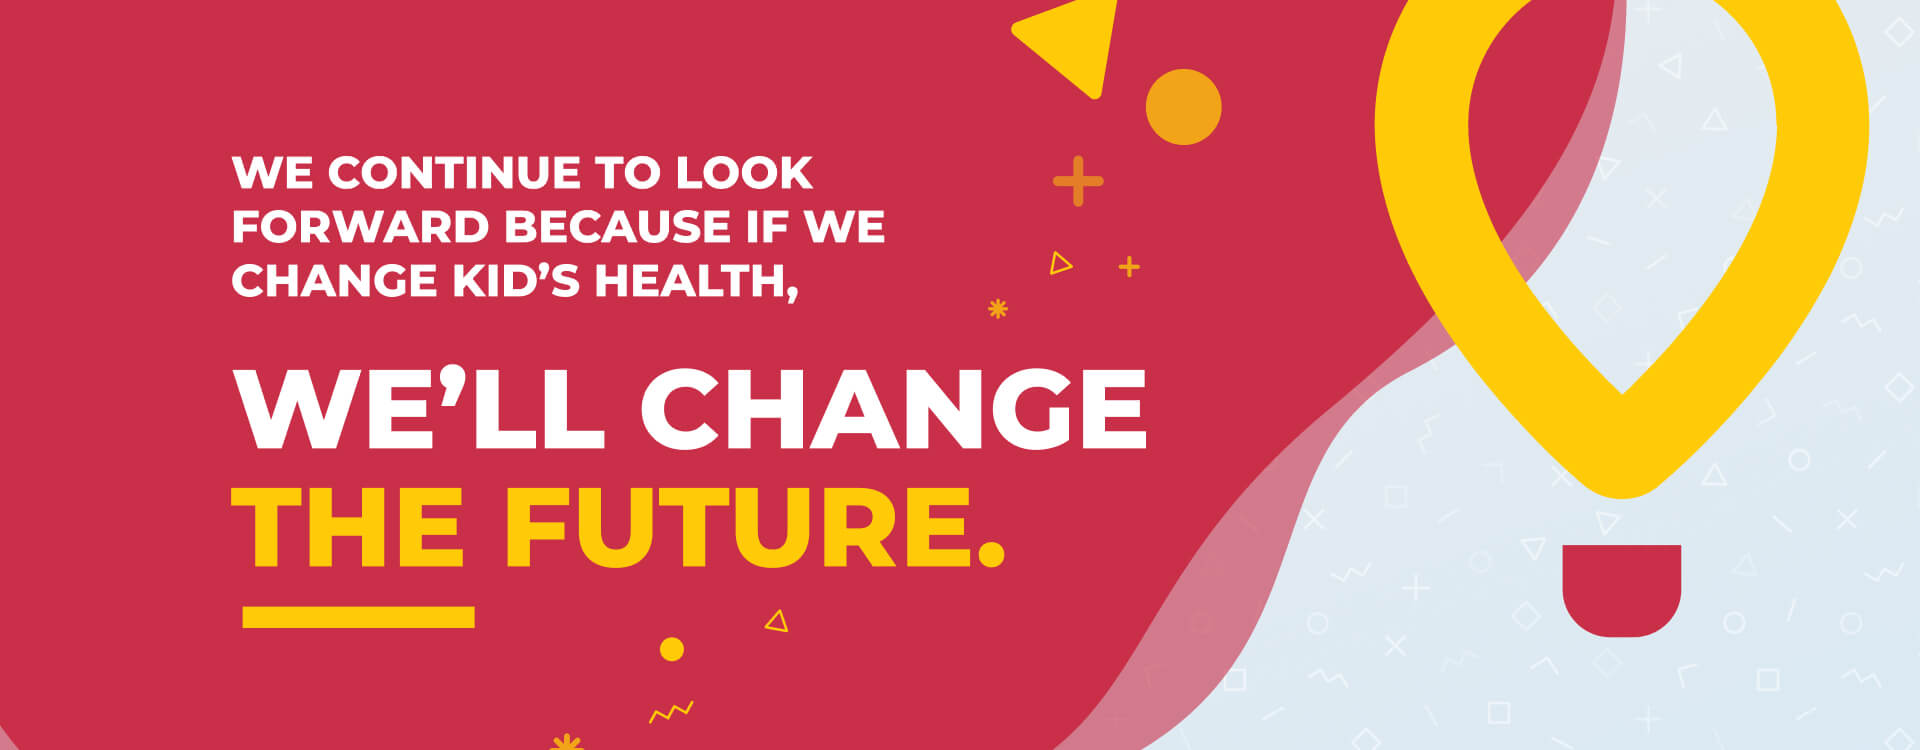 Slide 8 - We continue to look forward because if we change kid's health, we'll change the future.